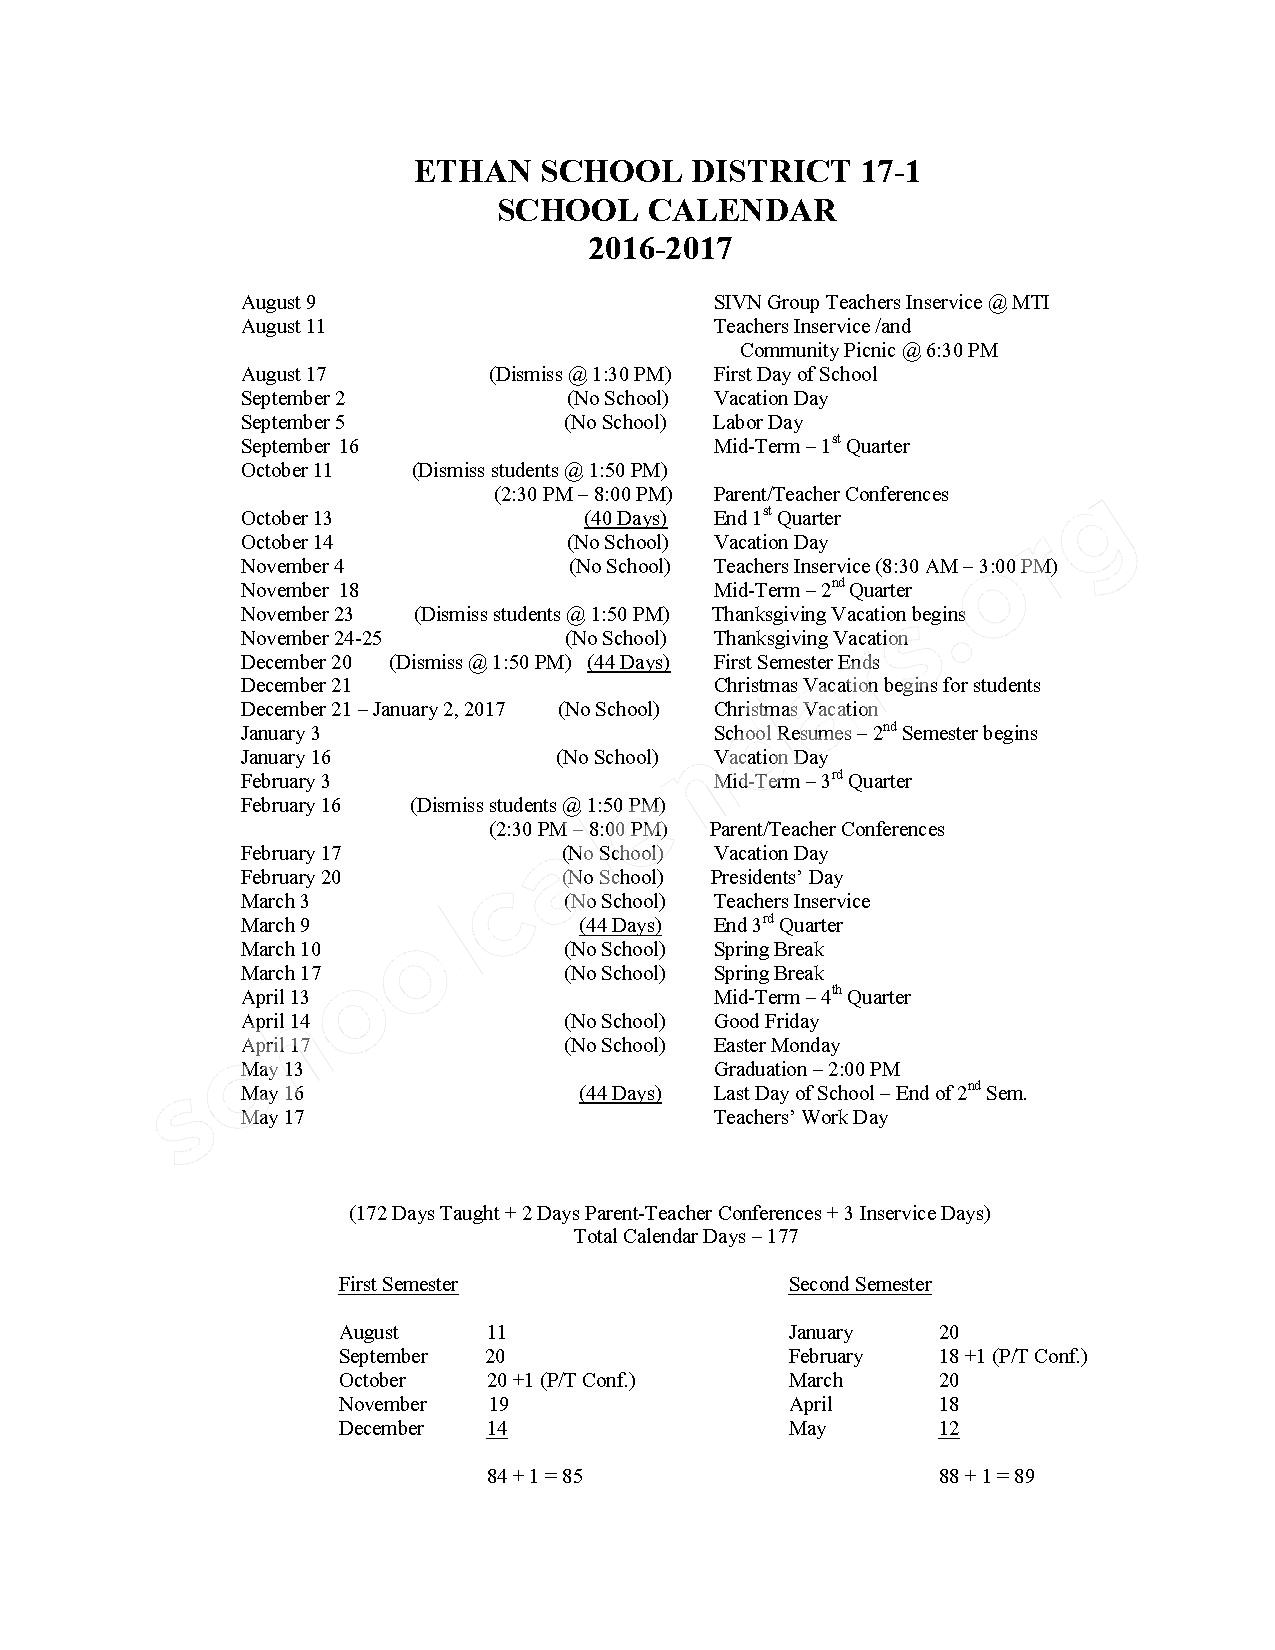 2016 - 2017 School Calendar – Ethan School District 17-1 – page 1